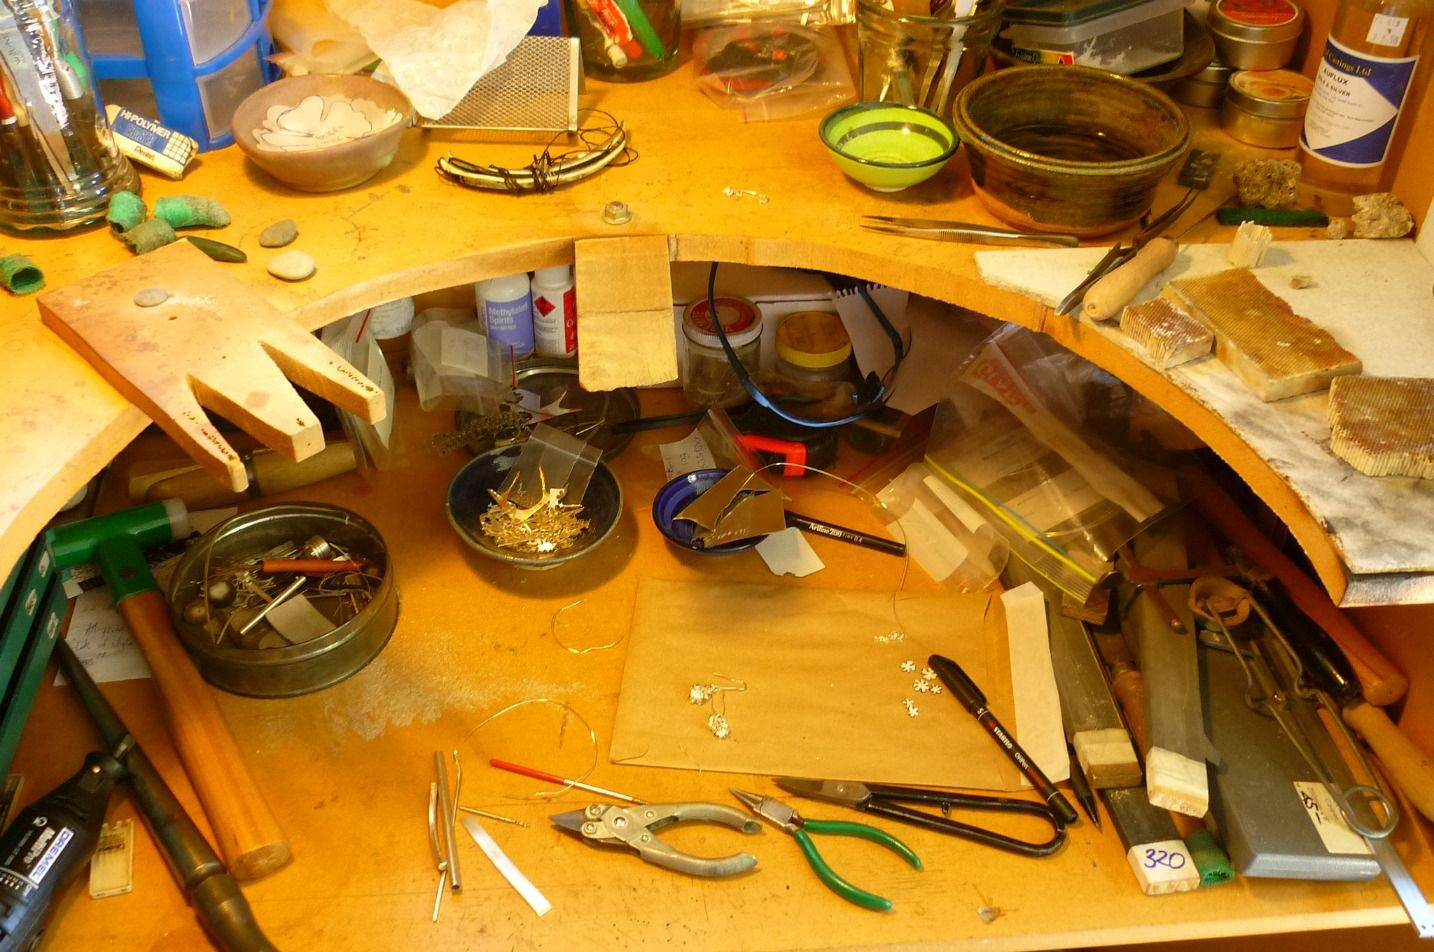 Jewellers Bench Ideas On Pinterest Workbenches Benches